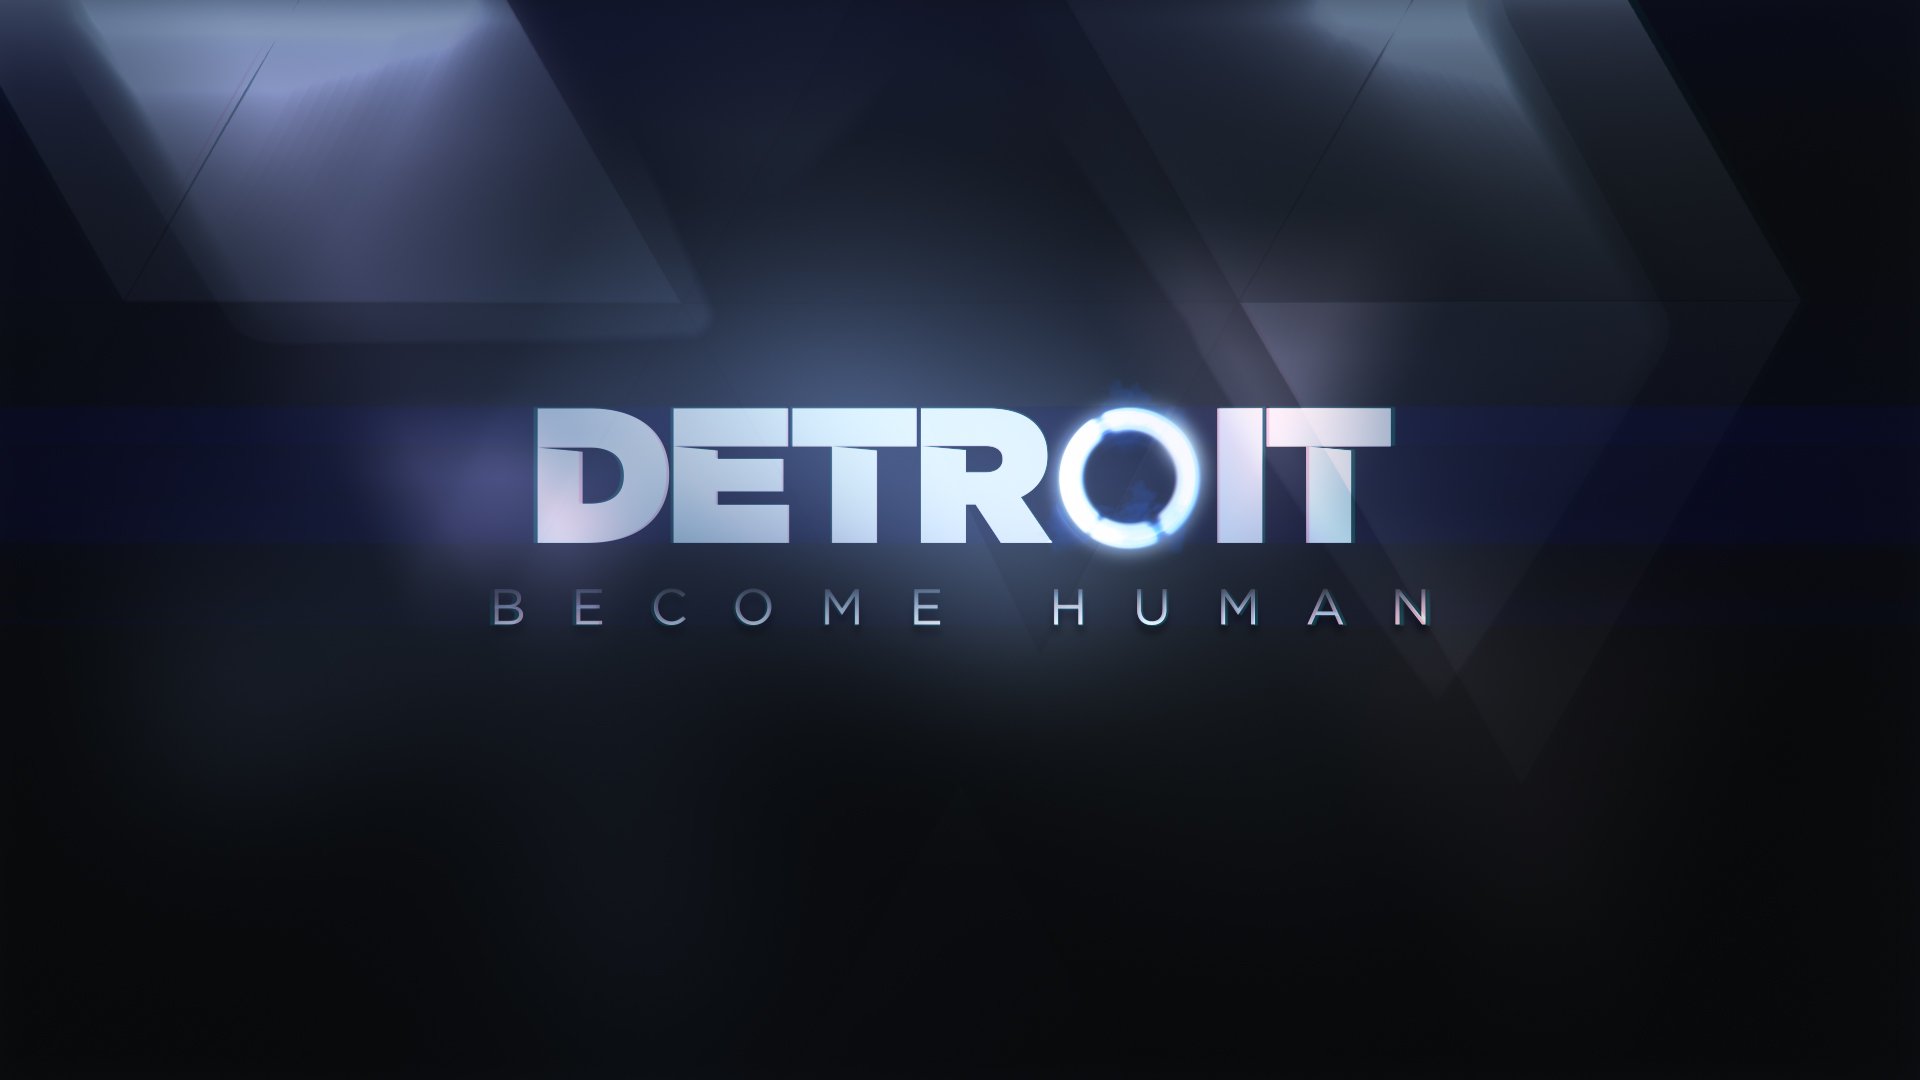 Detroit: Become Human, possibile DLC/sequel in programma?